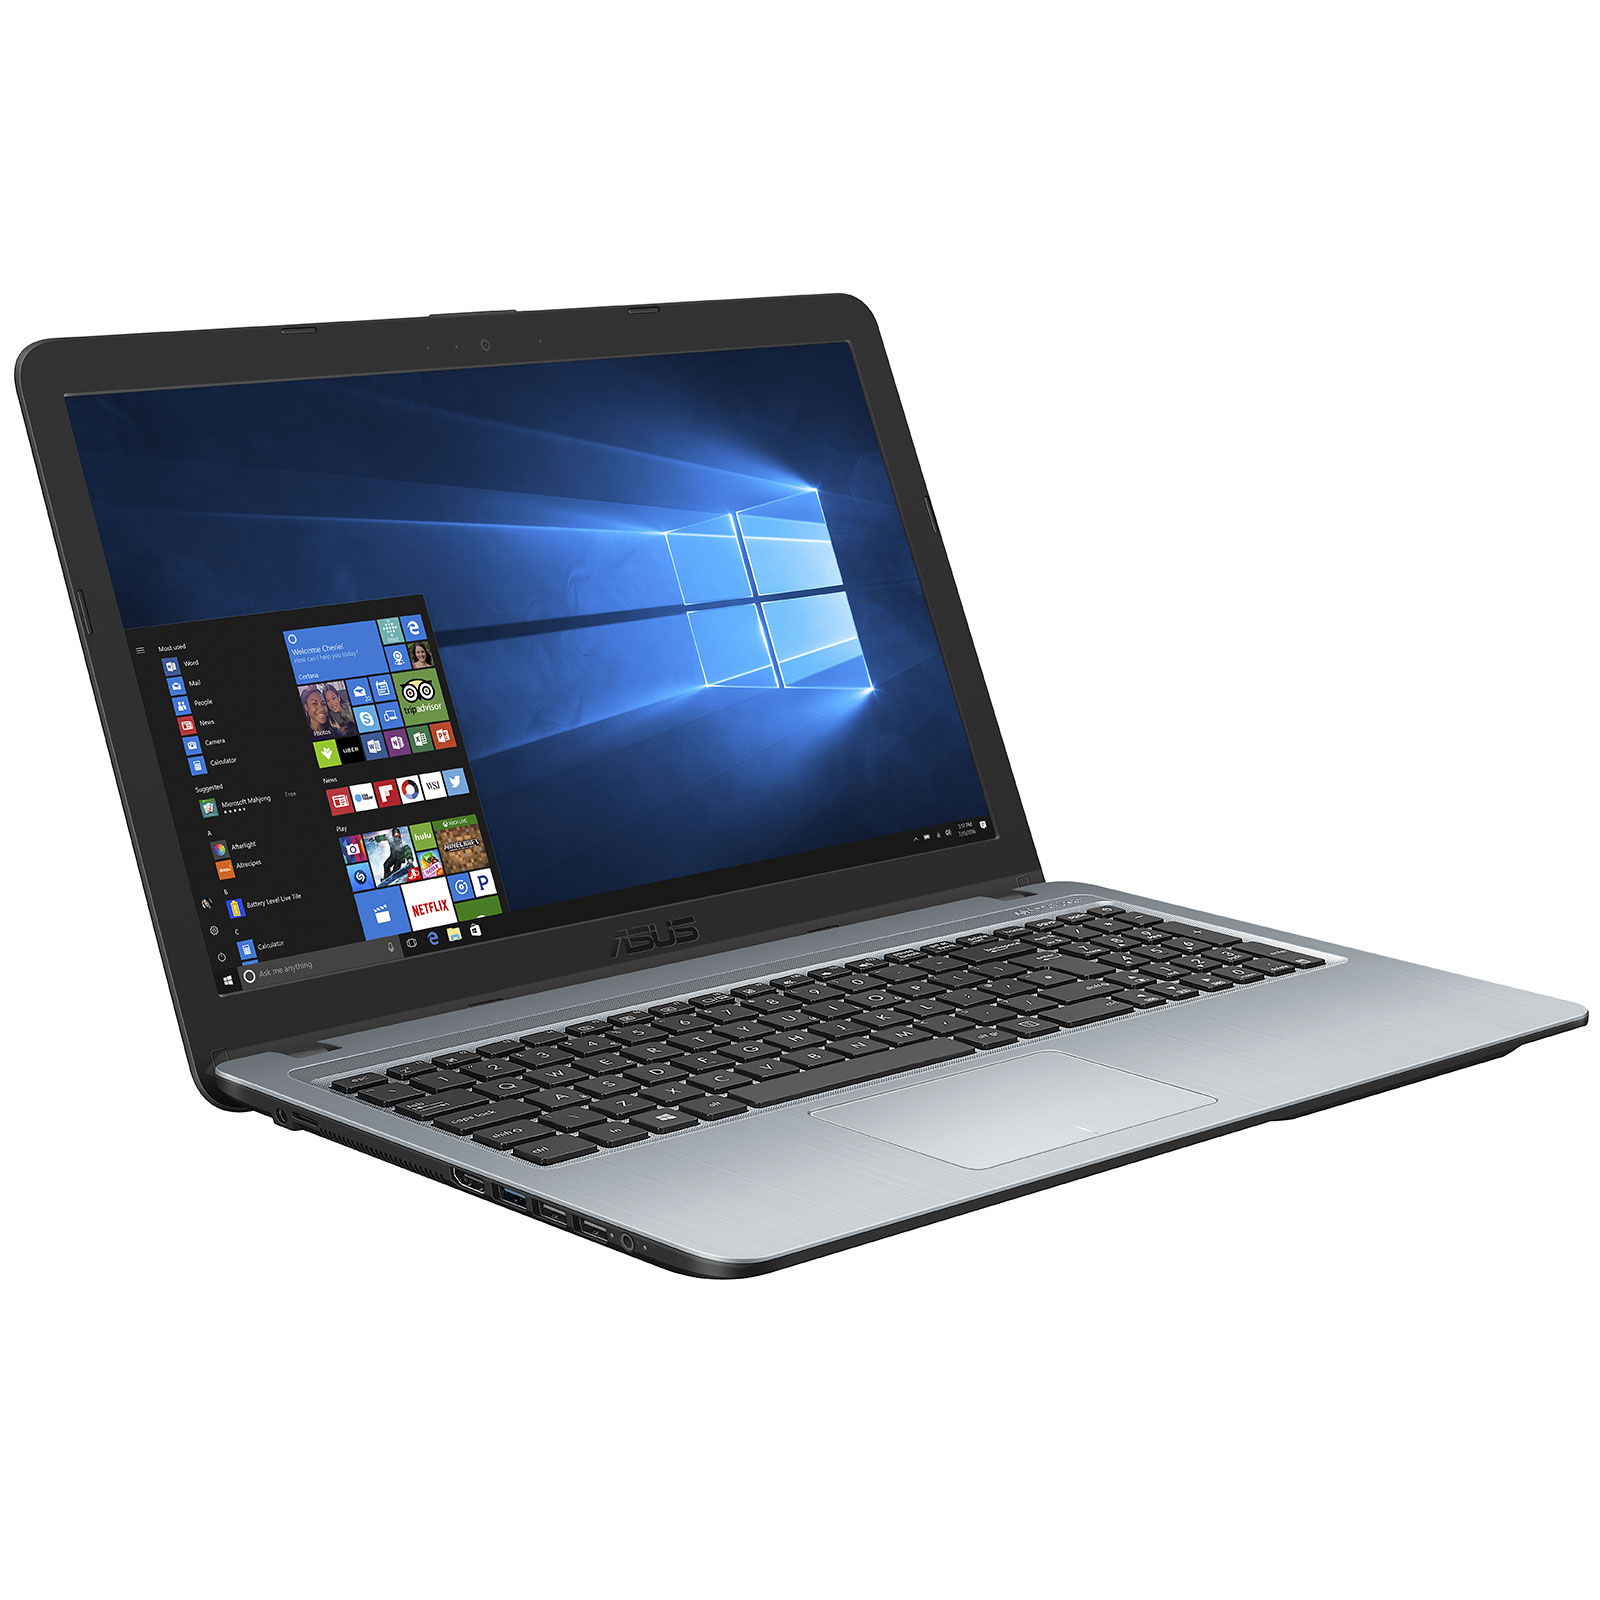 "PC portable ASUS R540UA-DM488T Intel Core i5-8250U 4 Go SSHD 1 To 15.6"" LED Full HD Wi-Fi AC/Bluetooth Webcam Windows 10 Famille 64 bits"